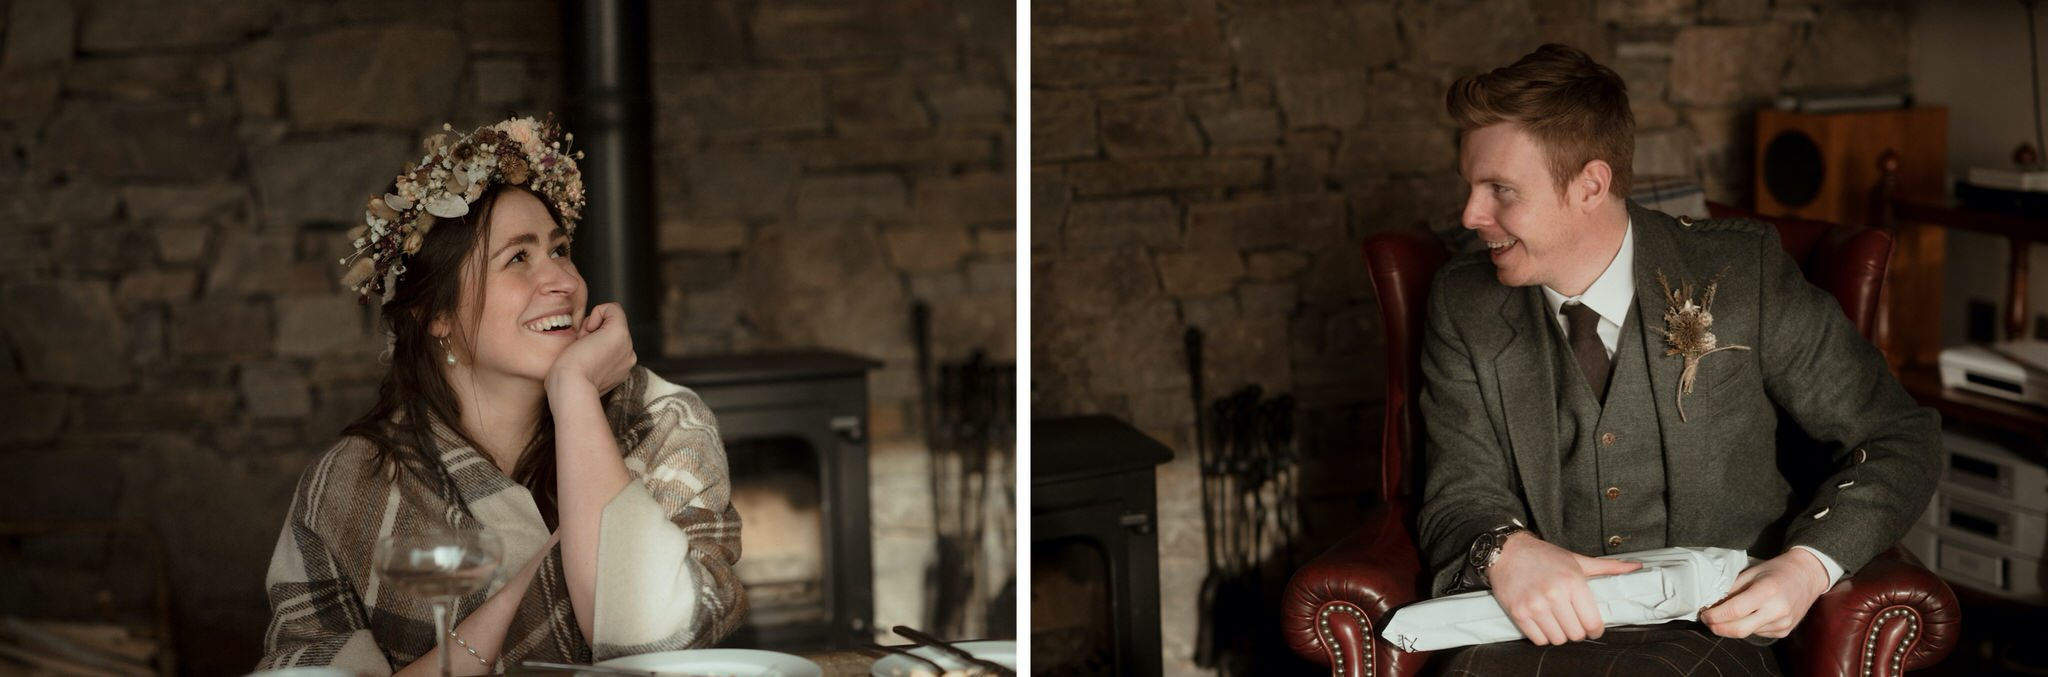 Bride and groom open presents in a cottage after their elopement wedding in Scotland